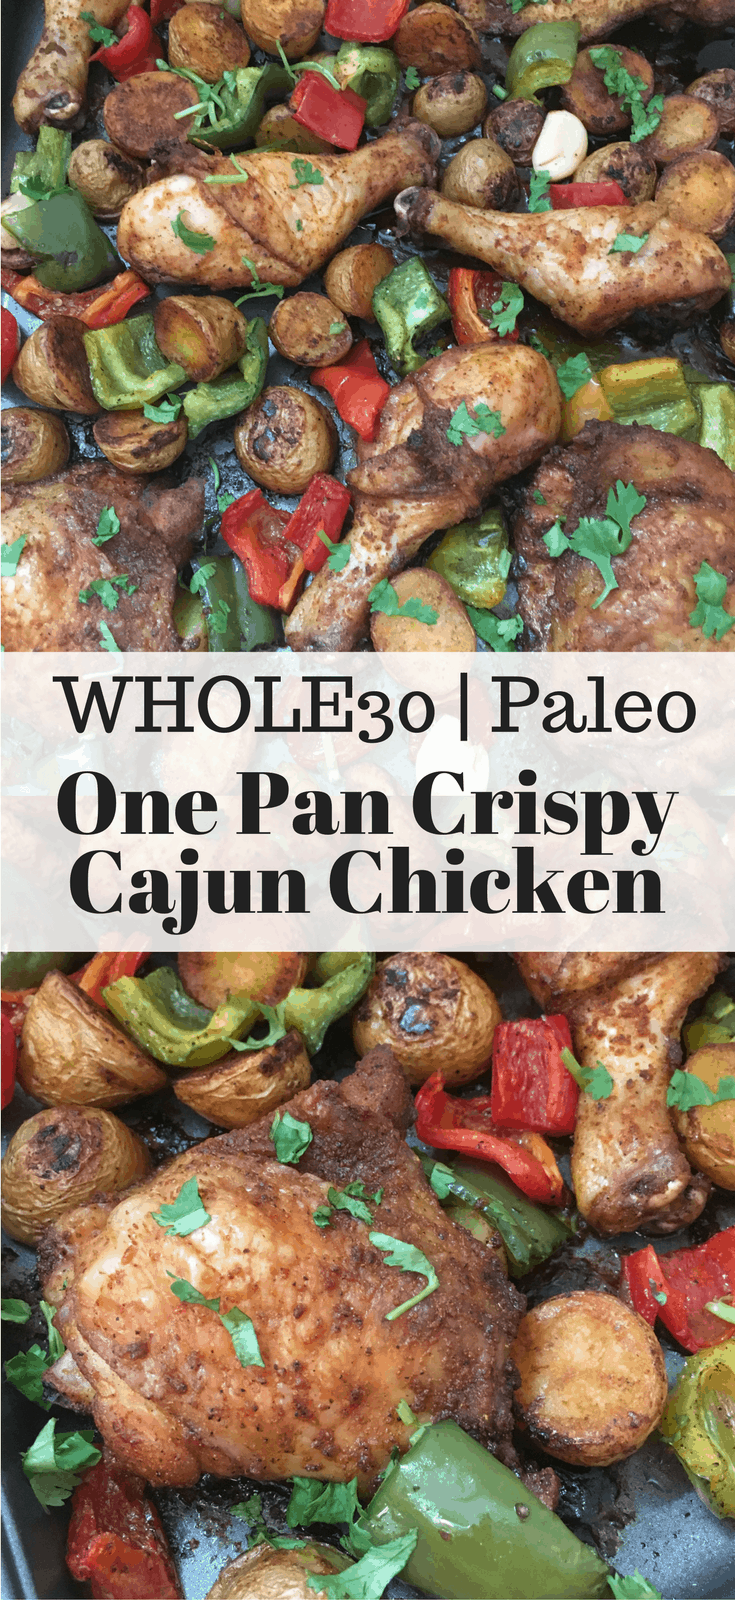 One Pan Crispy Cajun Chicken